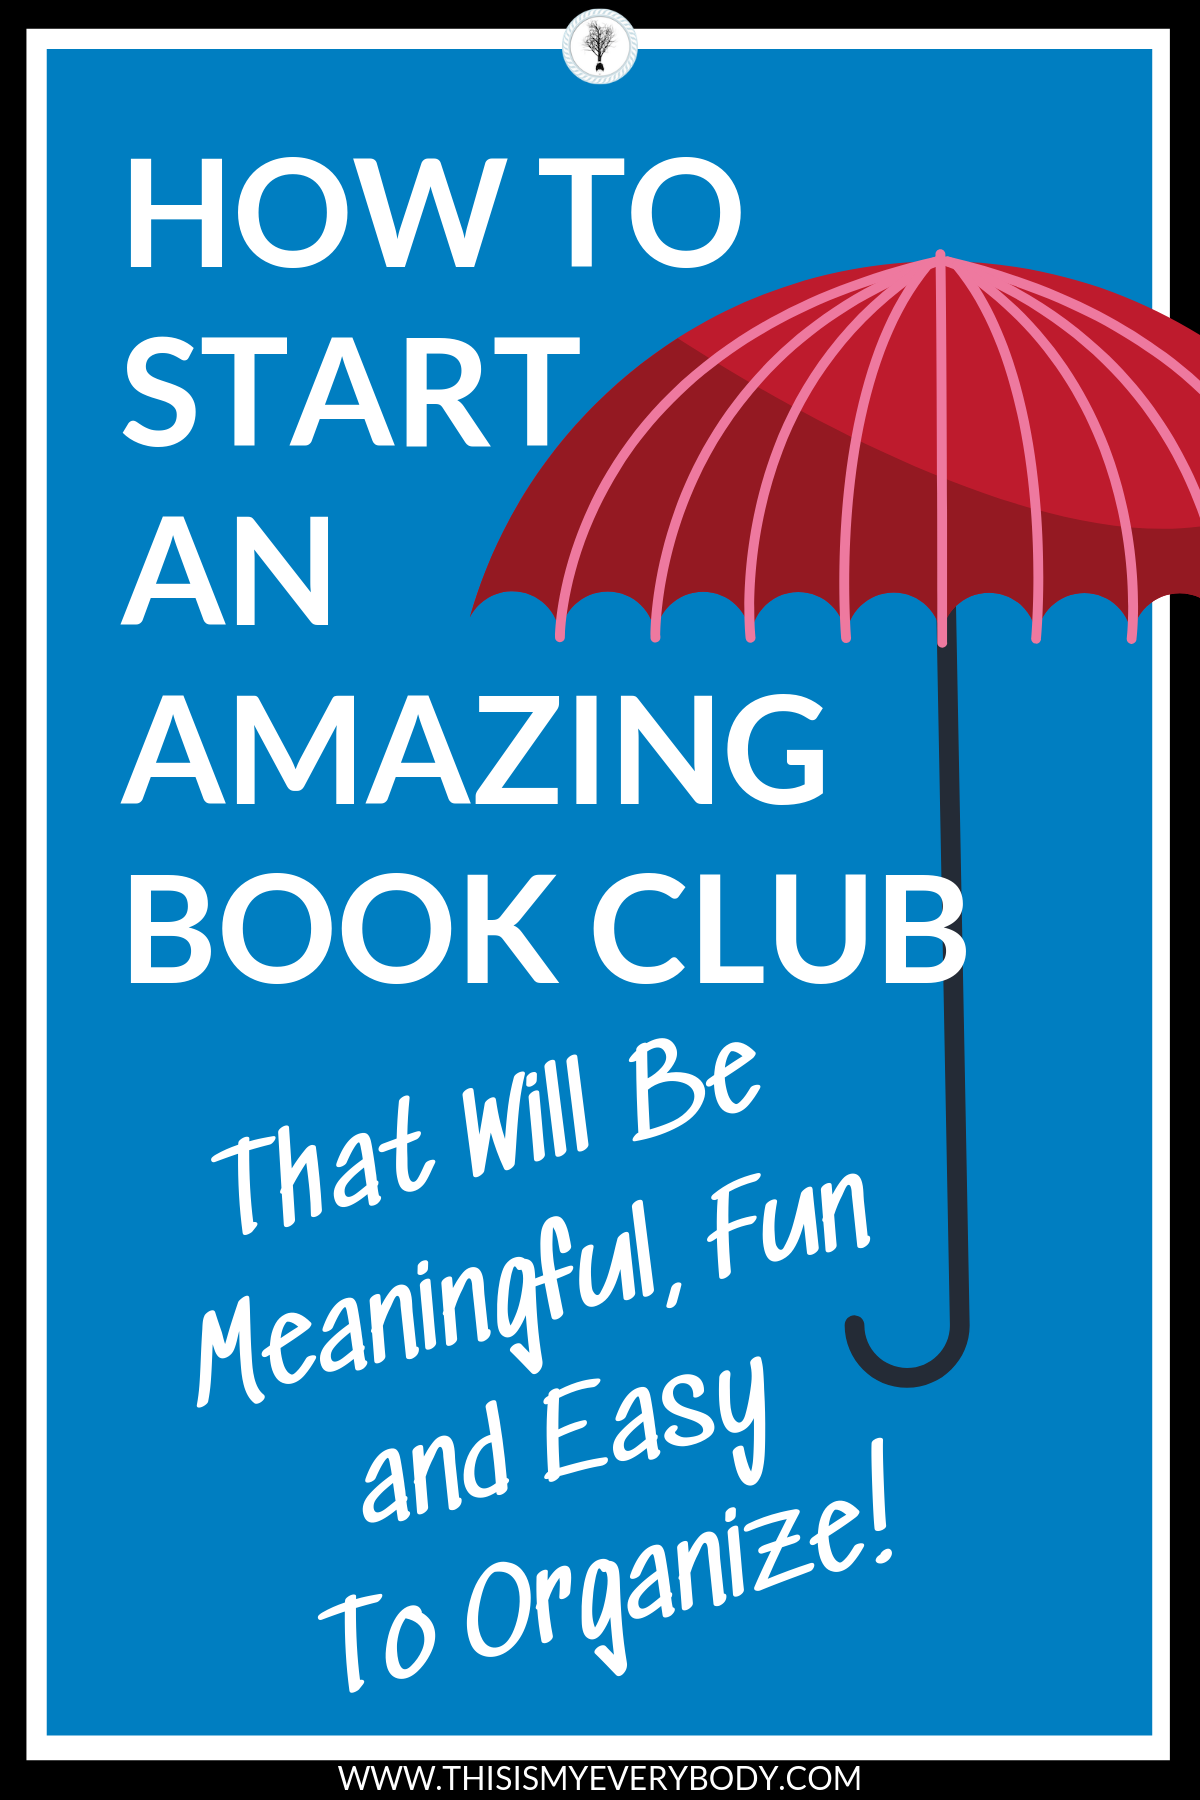 """How To Start An Amazing Book Club That Will Be Meaningful, Fun and Easy To Organize! A step-by-step list that provides simple, creative and effective suggestions to how to start an AMAZING book club so you can spend more time actually enjoying """"being"""" in a book club rather than organizing it! 